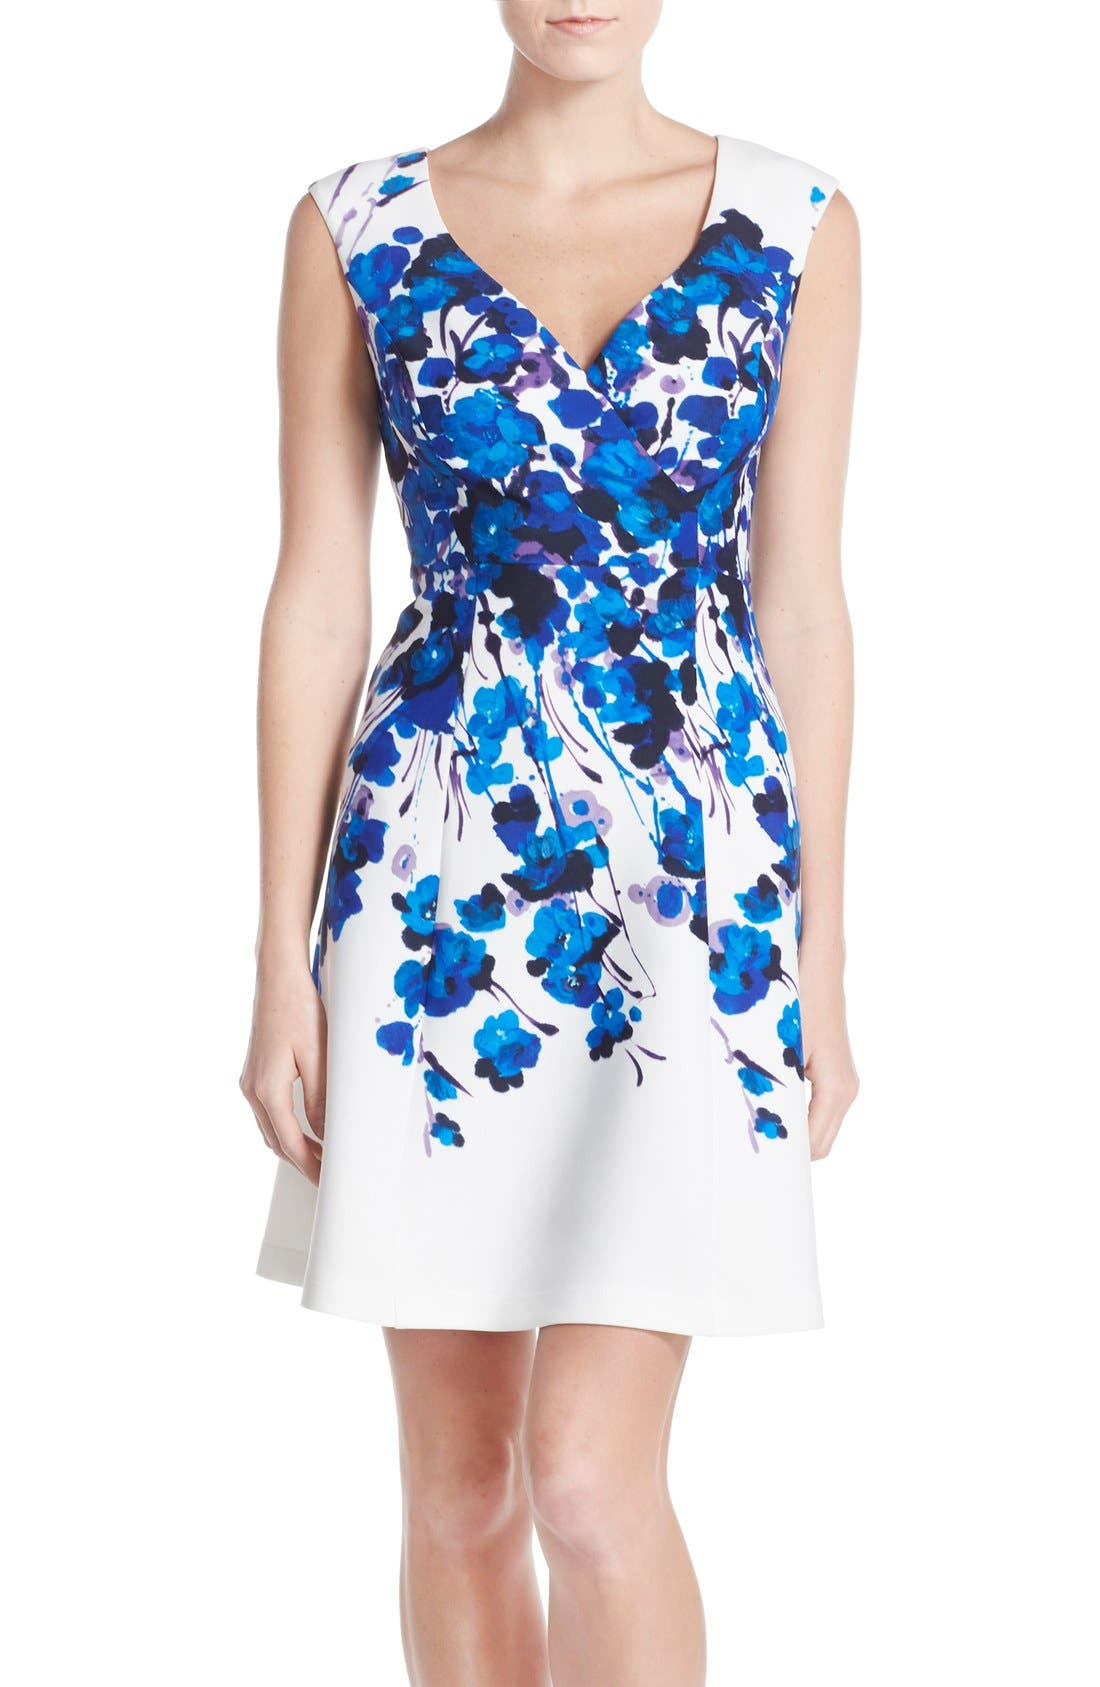 Main Image - Adrianna Papell Placed Print Stretch Fit & Flare Dress